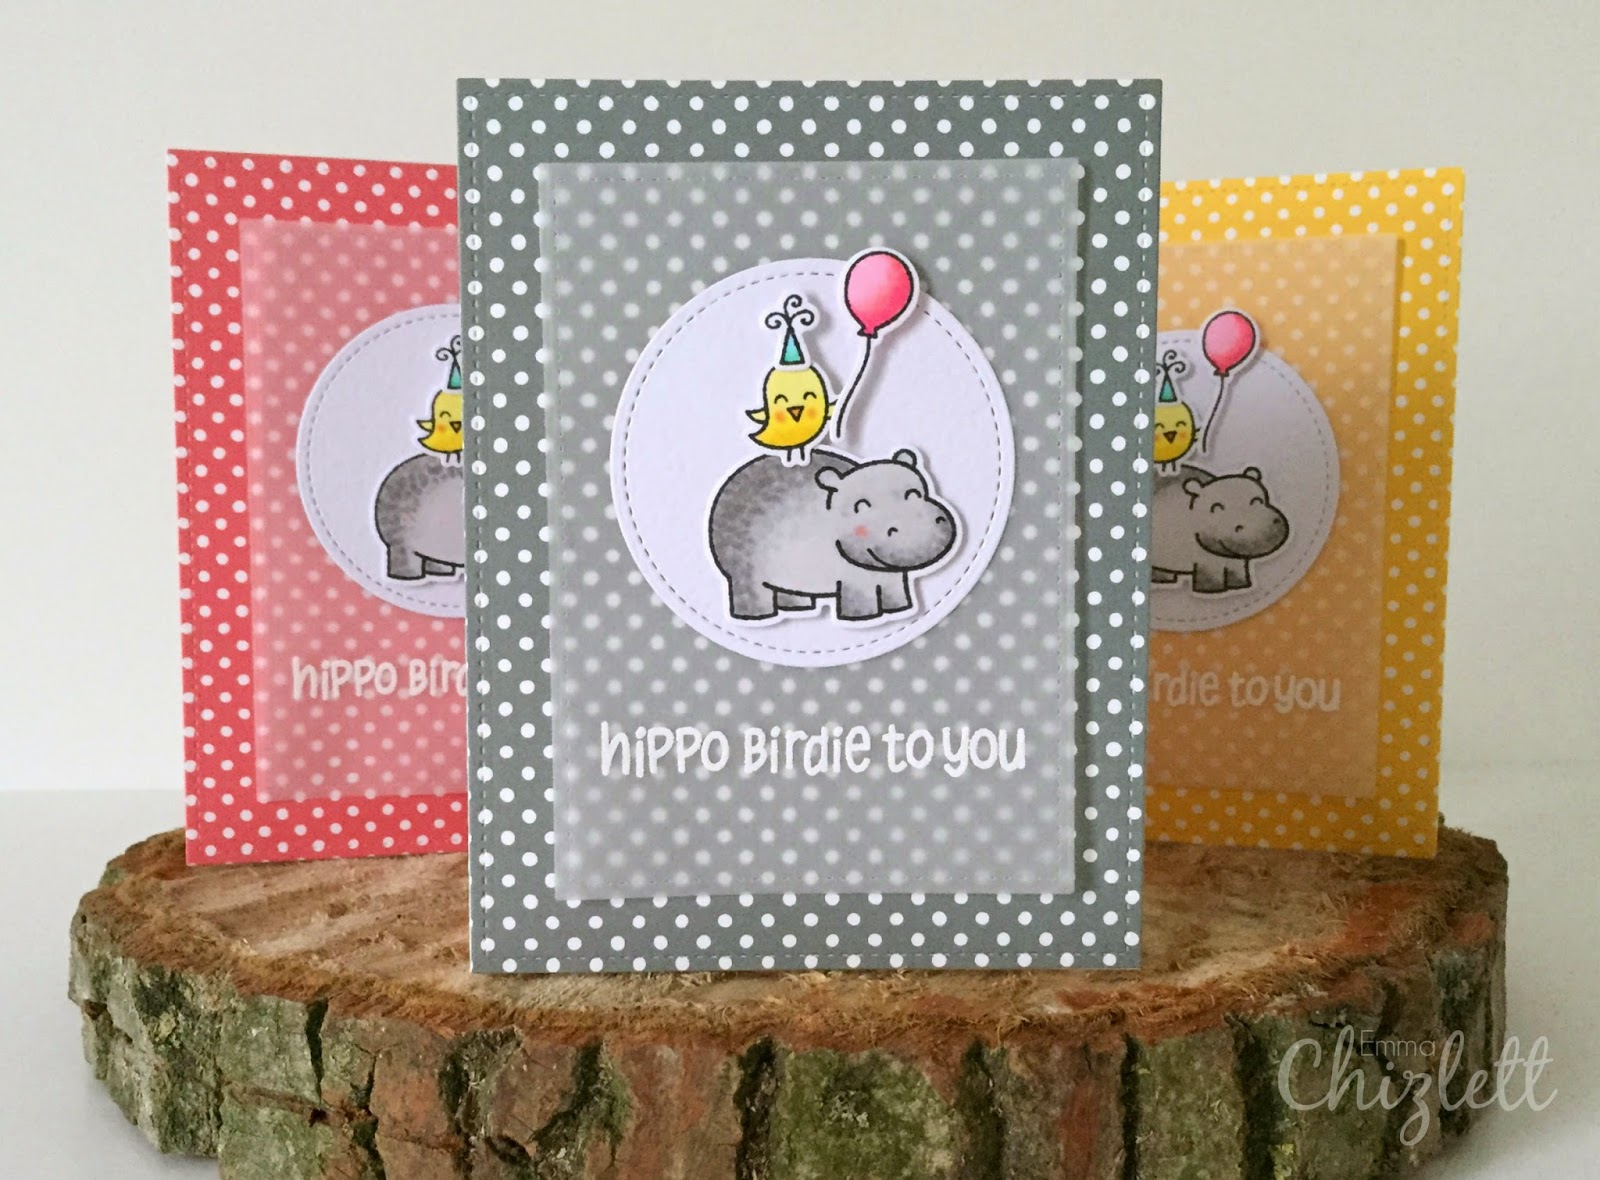 hippo birdie birthday card ; Hippo%252Bbirdie%252Bto%252Byou%252B-%252Bselection%252Bwith%252Bwatermark